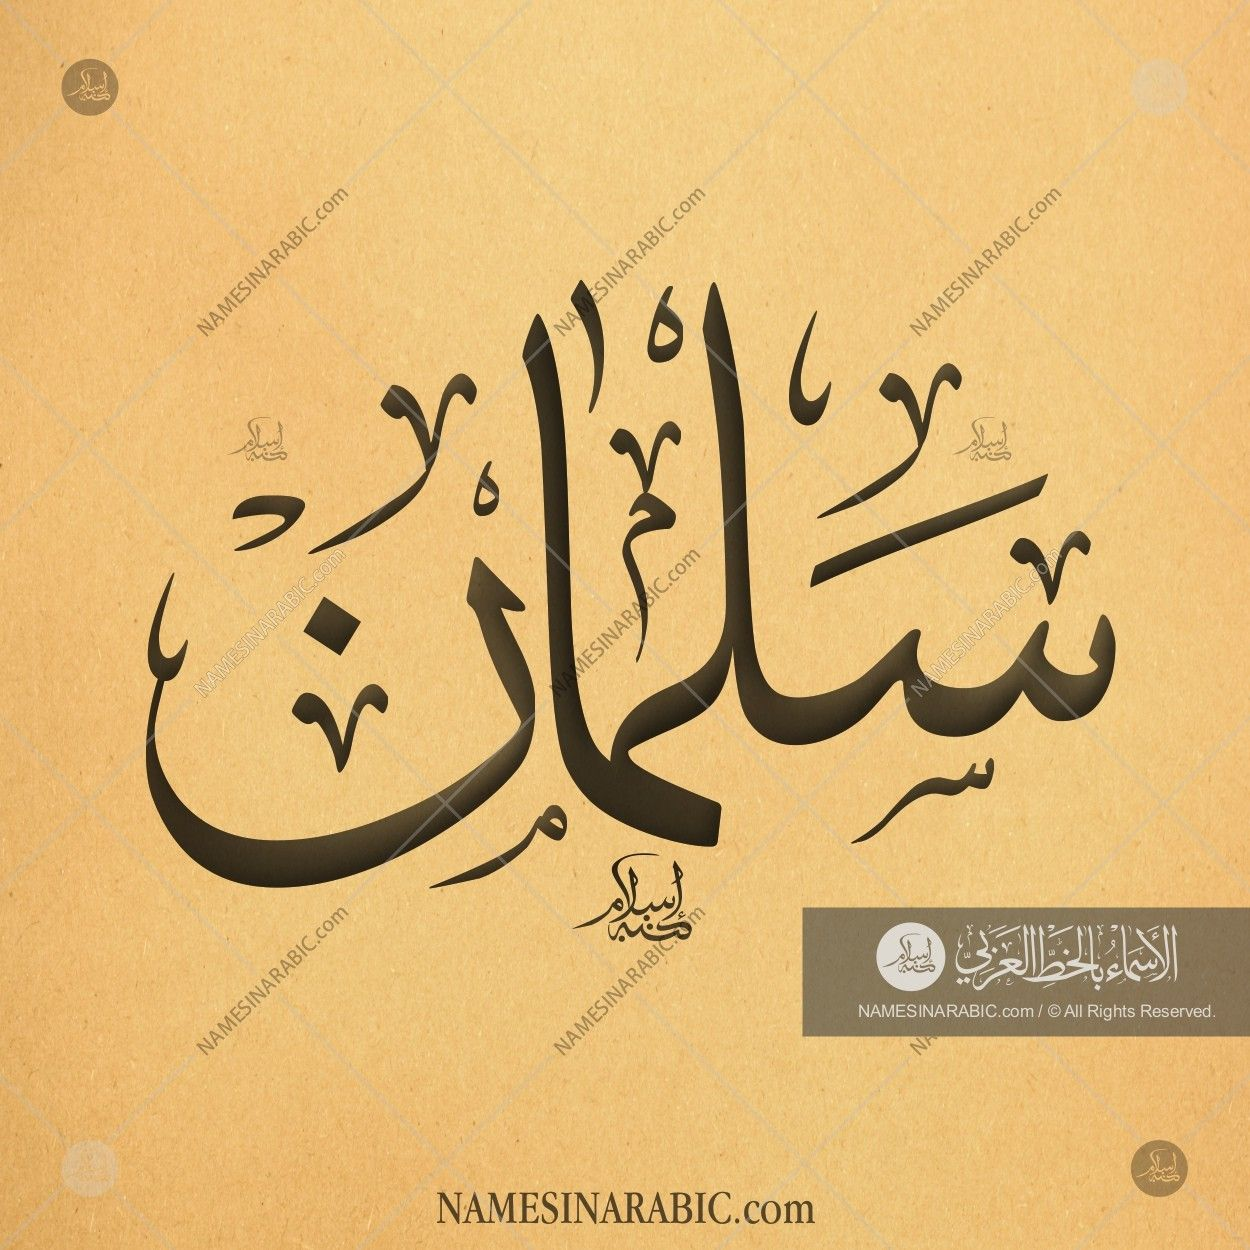 Salman سلمان Names In Arabic Calligraphy Name 3997 Islamic Calligraphy Calligraphy Name Calligraphy